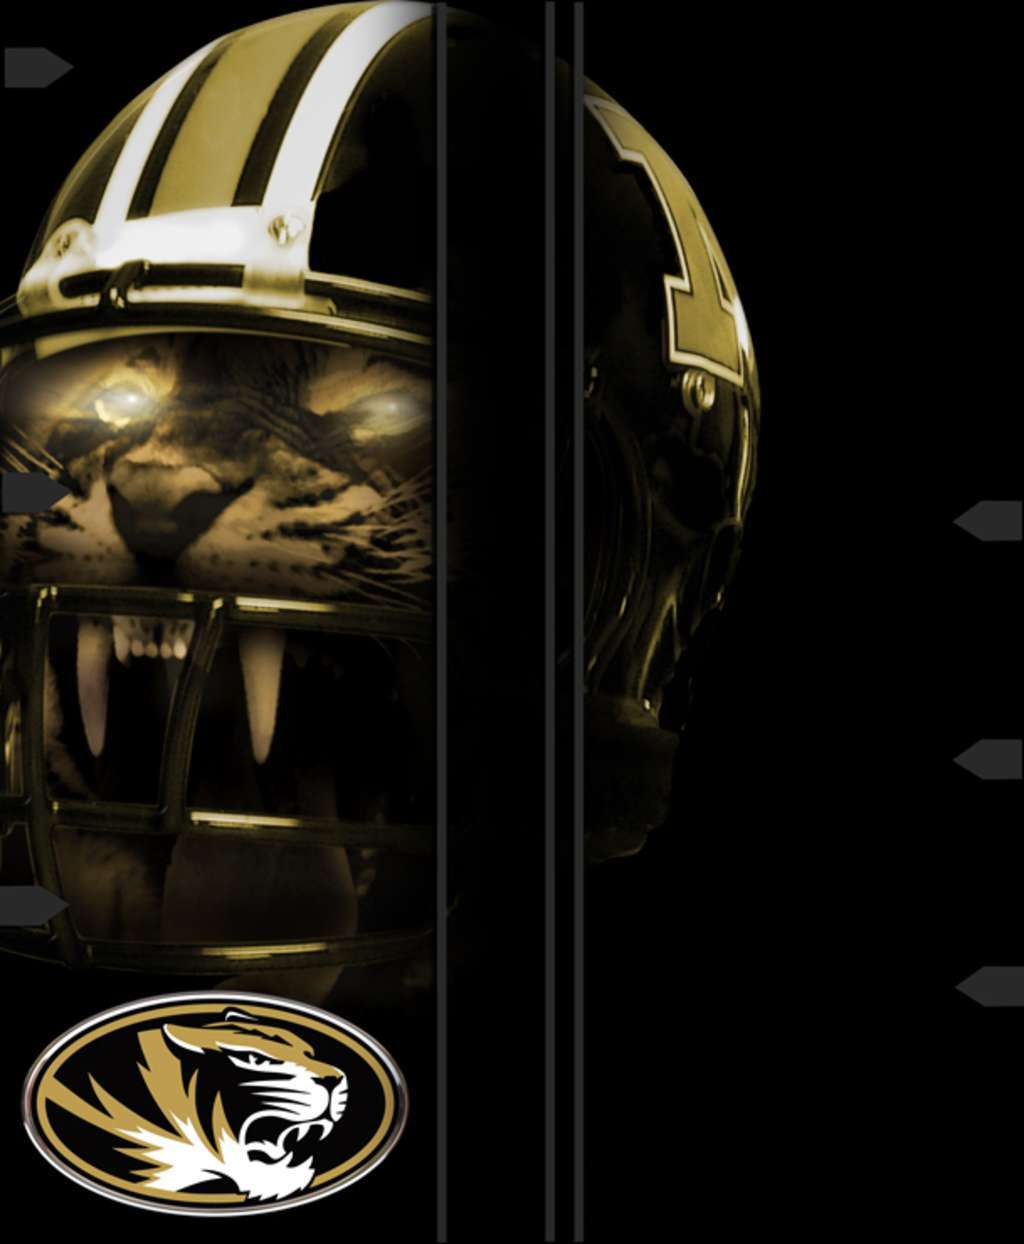 Free Download Mizzou Tigers Background 1024x1244 For Your